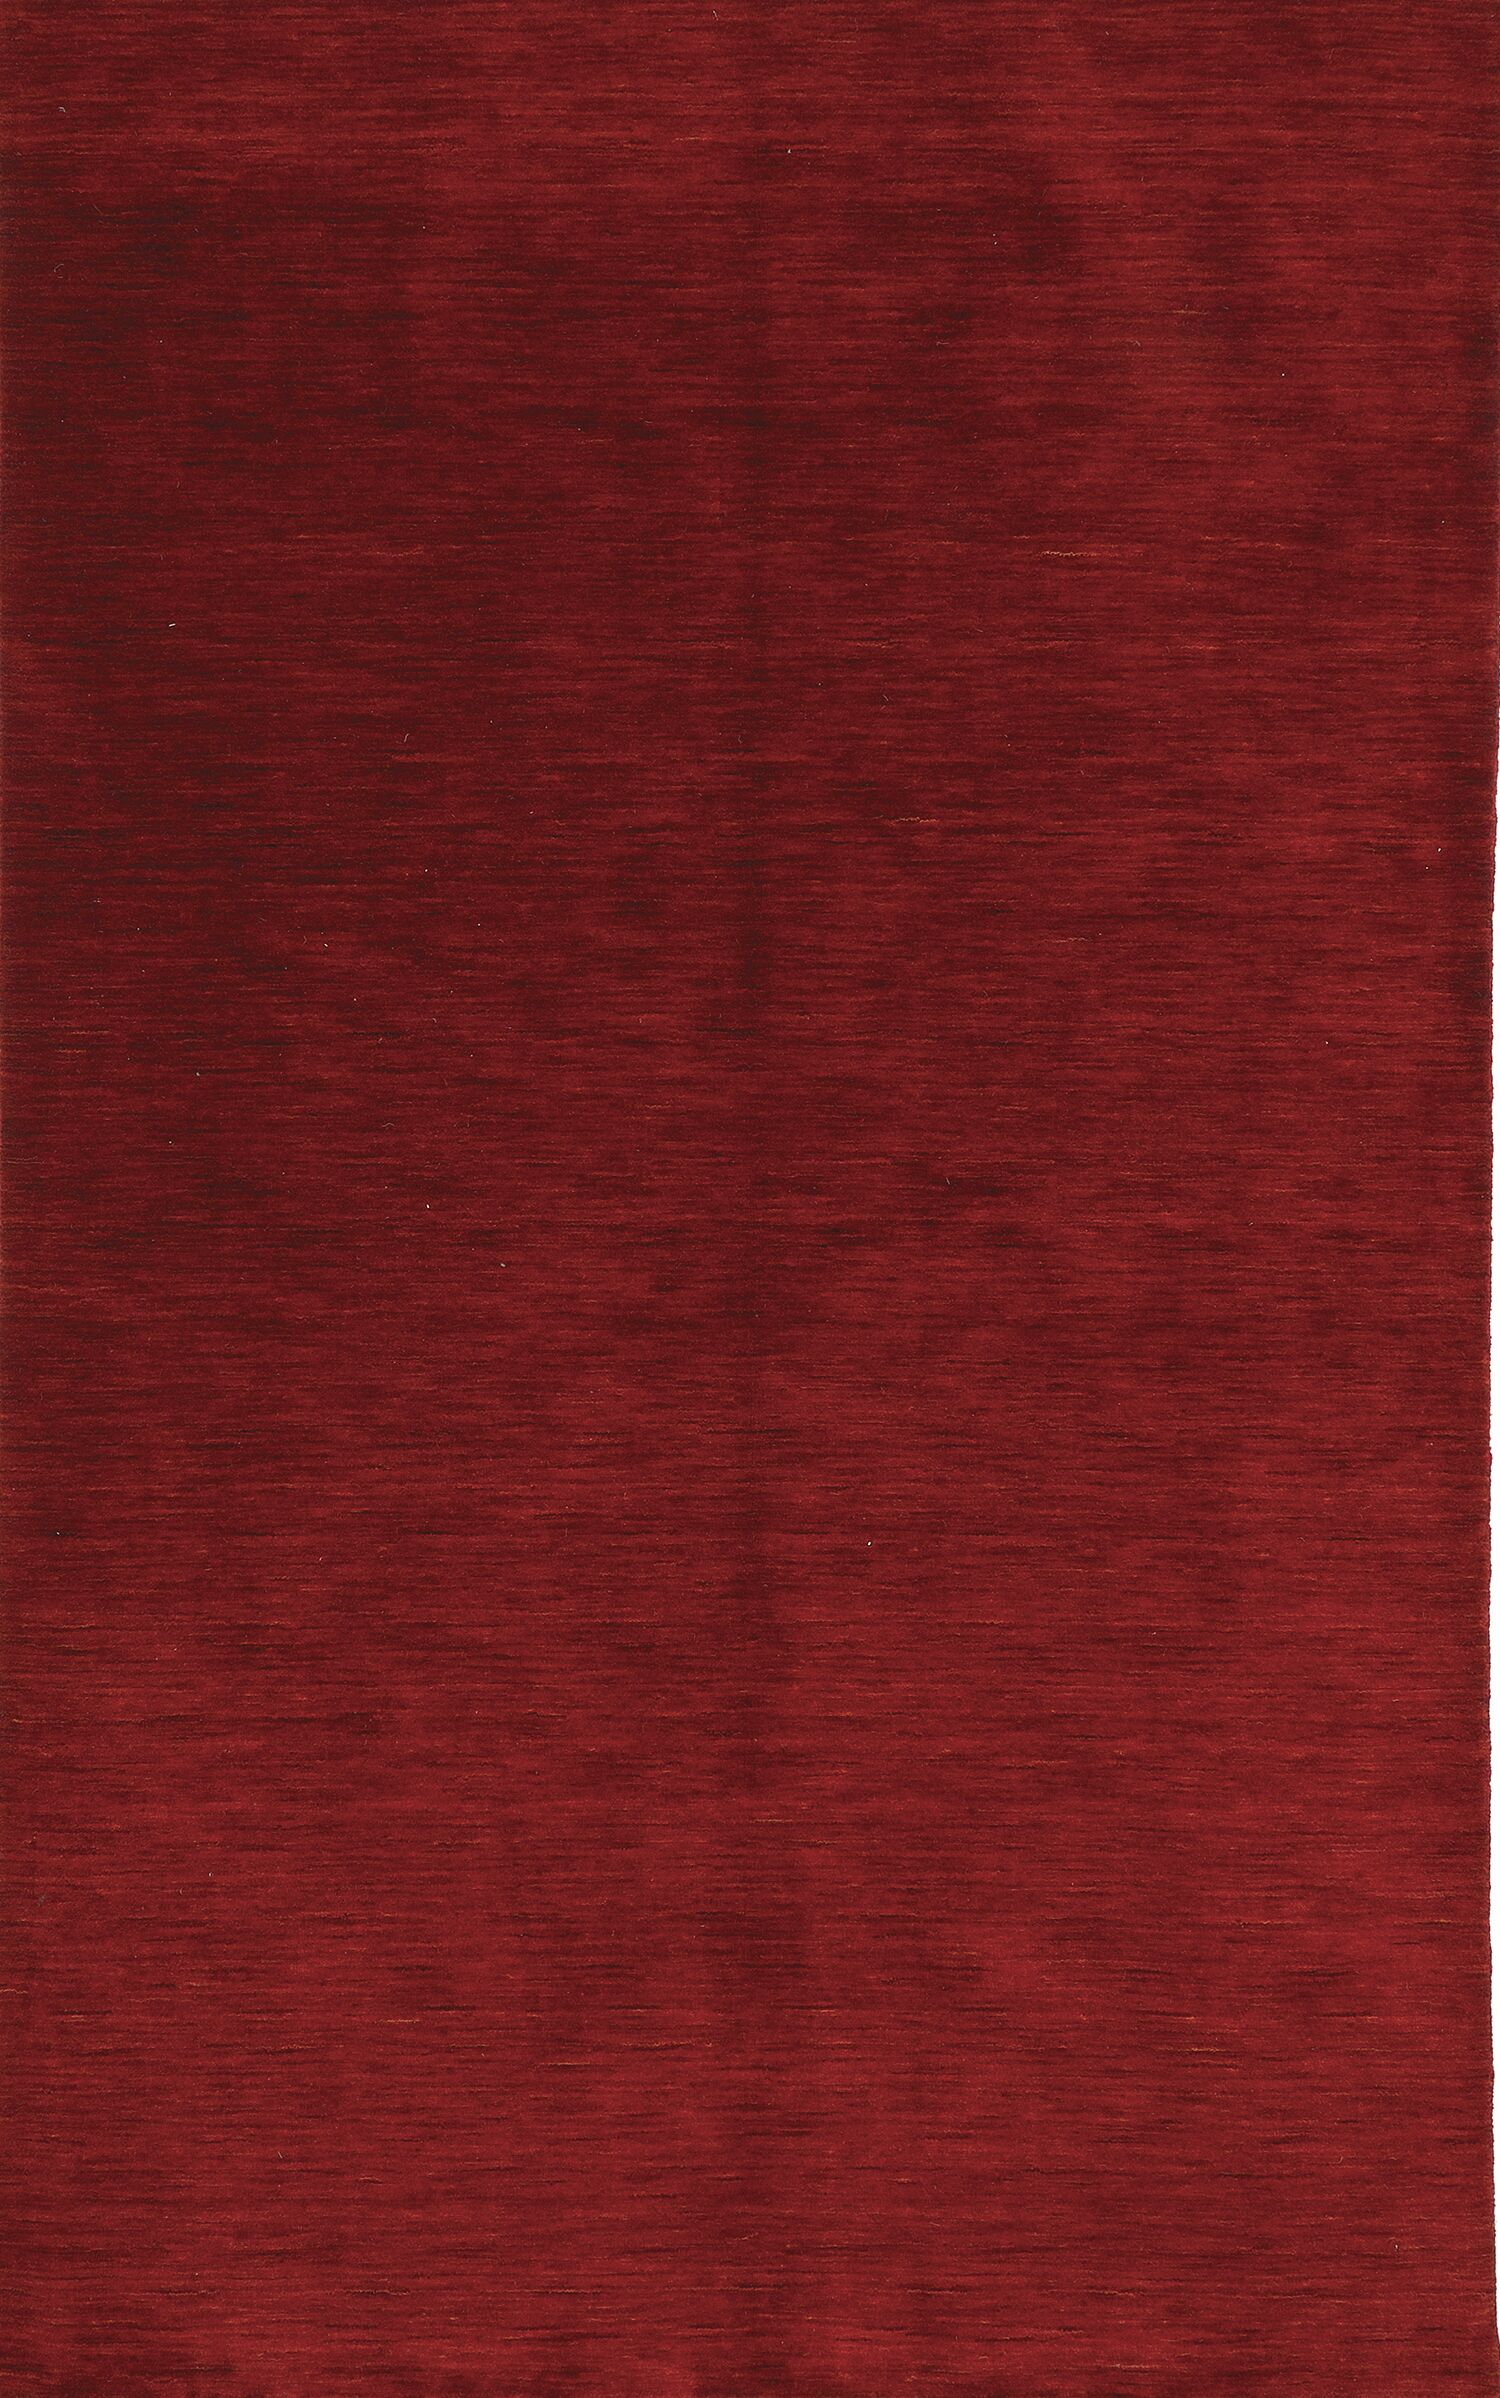 Chauvin Rust Area Rug Rug Size: 8' x 10'